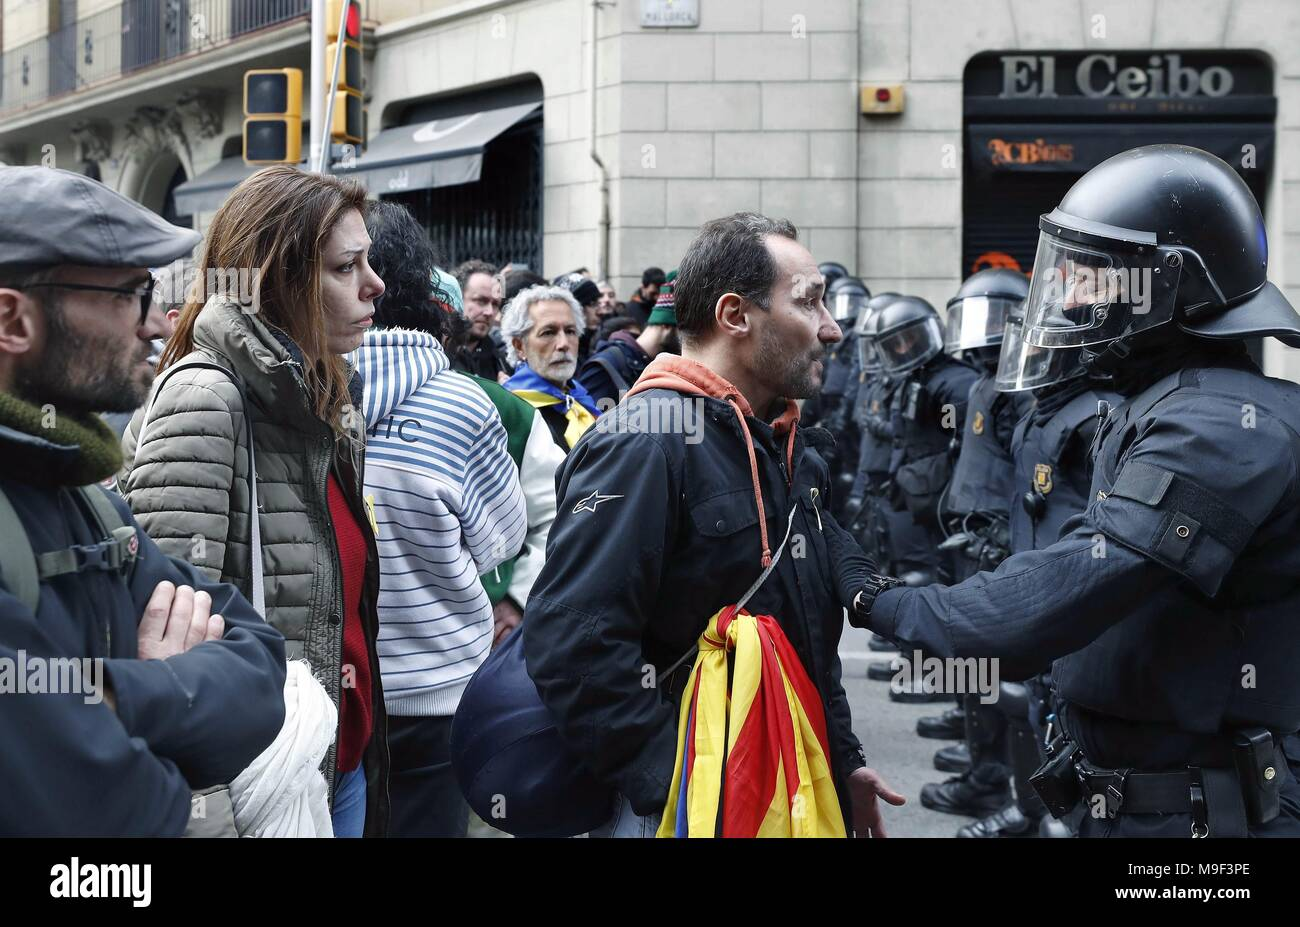 Catalonian riot police members face protesters during a protest called for by the Republican Defense Comittee (CDR) to protest against the detention of former Catalan leader Carles Puigdemont at the Spanish Government Delegation in the Autonomous Community of Catalonia in Barcelona, Catalonia, north eastern Spain, 25 March 2018. According to reports, German police on 25 March 2018 allegedly detained former Catalan leader Puigdemont after he crossed into Germany from Denmark. Puigdemont is sought by Spain who issued an European arrest warrant against the former leader who was living in exile in Stock Photo